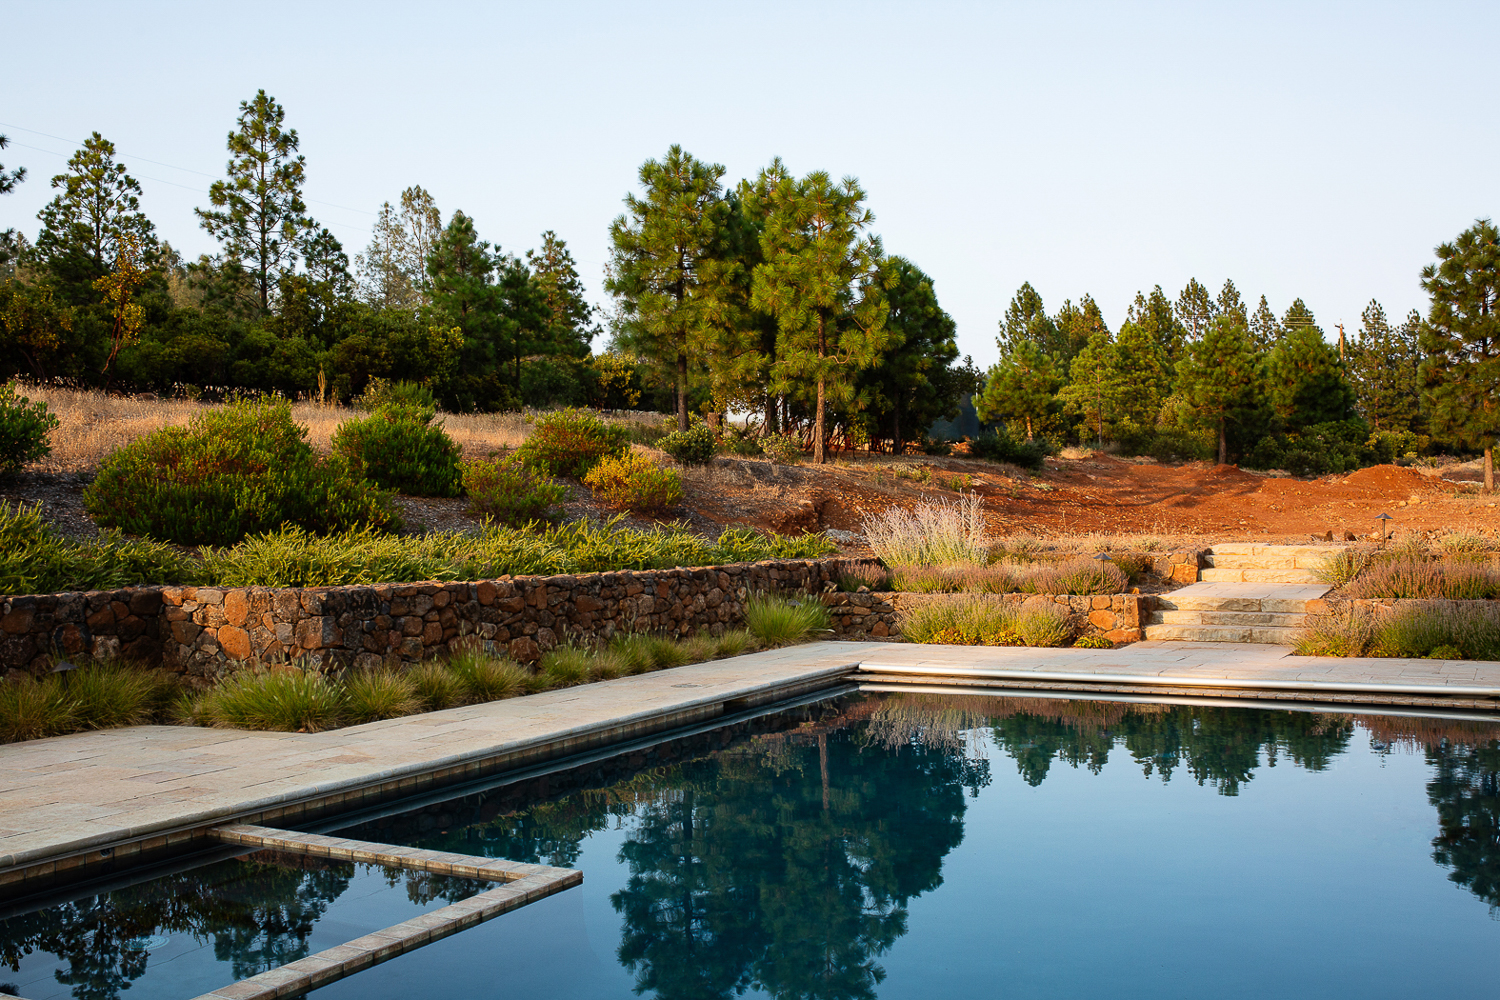 LEED certified landscape design photographers, Pacific Northwest architectural photographers. Pool with fire and drought resistant landscaping.